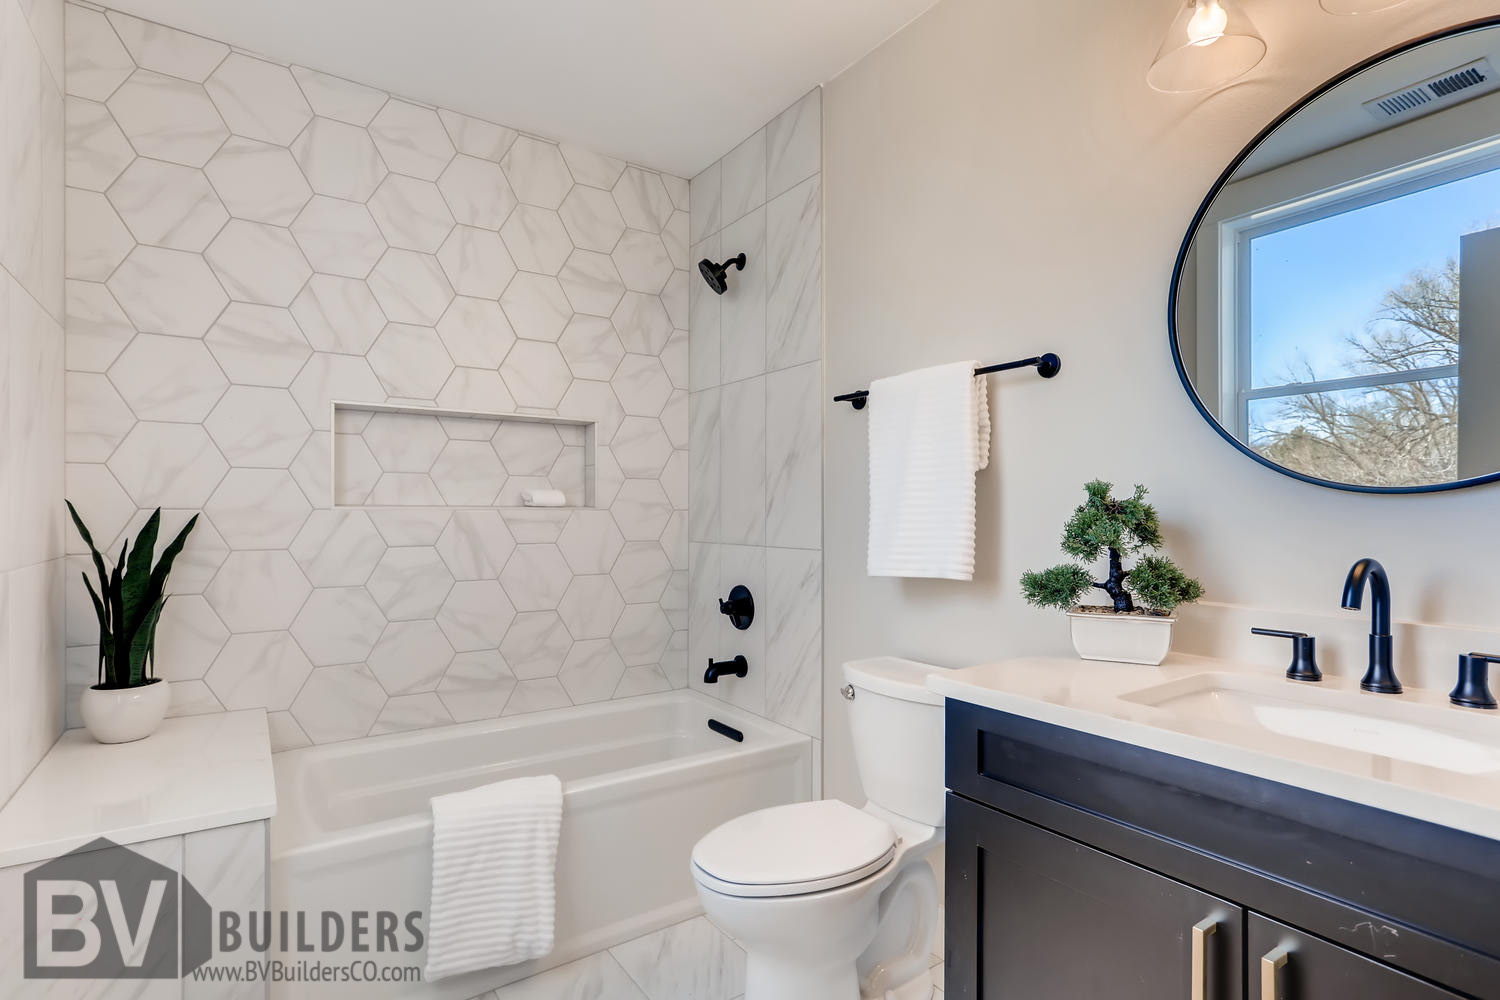 Bathroom with marble hexagon shower surround and recessed niche